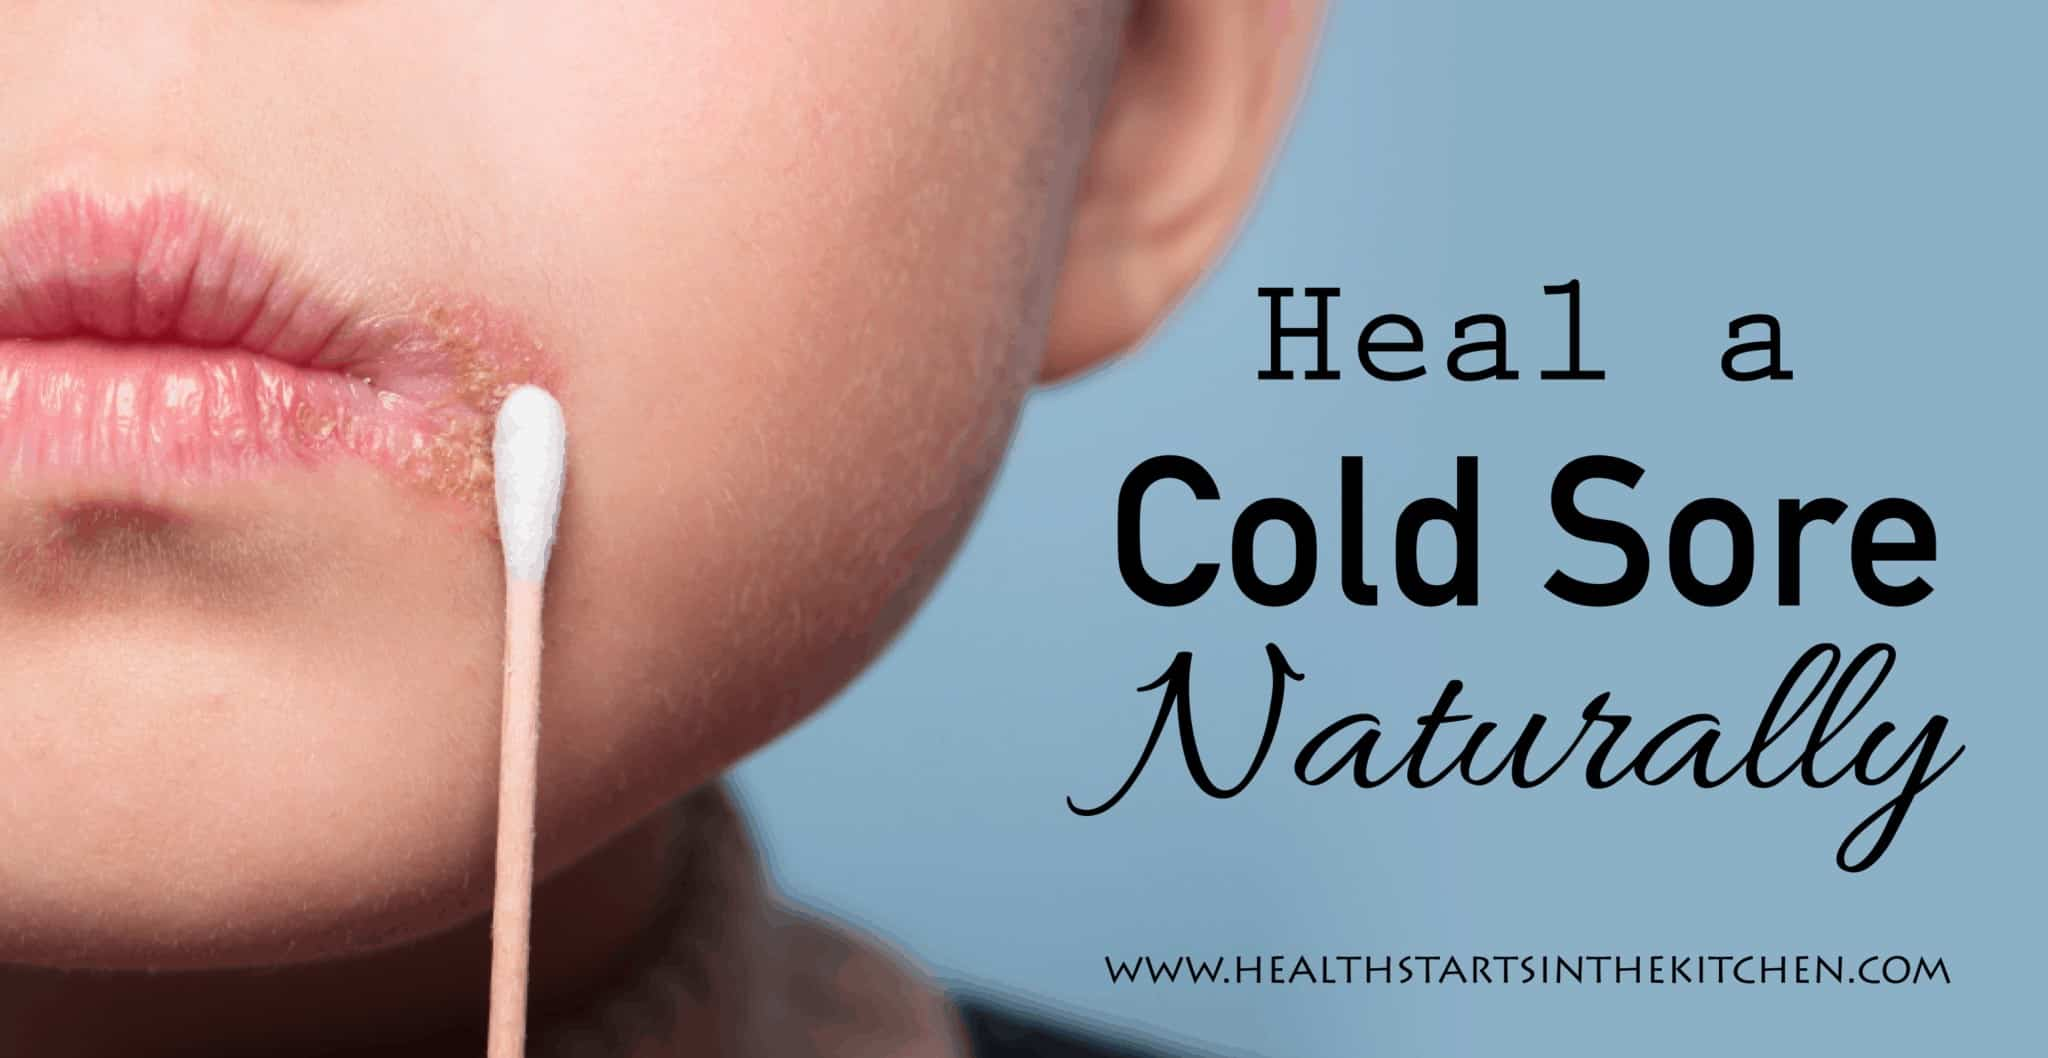 How to heal a cold sore naturally